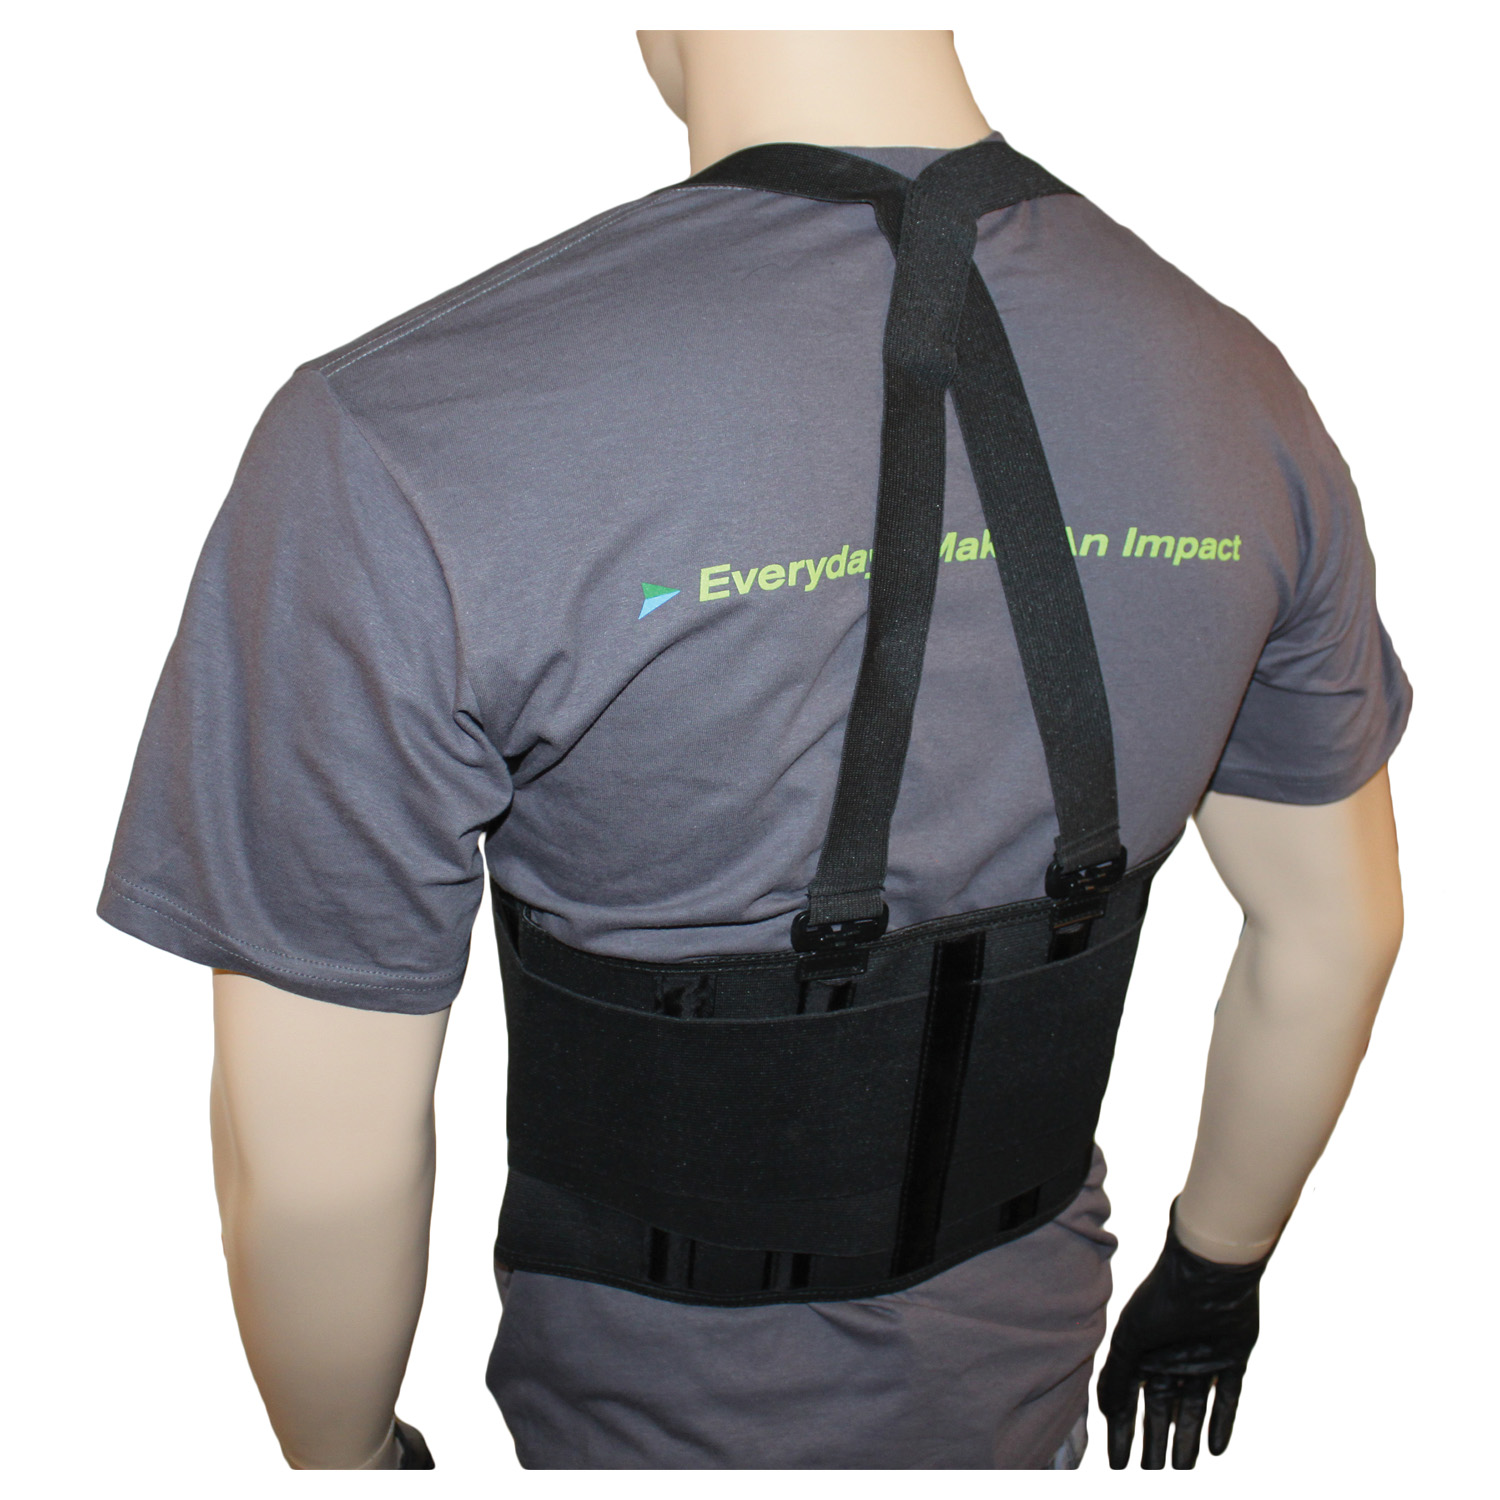 Impact Products 7389XL back support belt